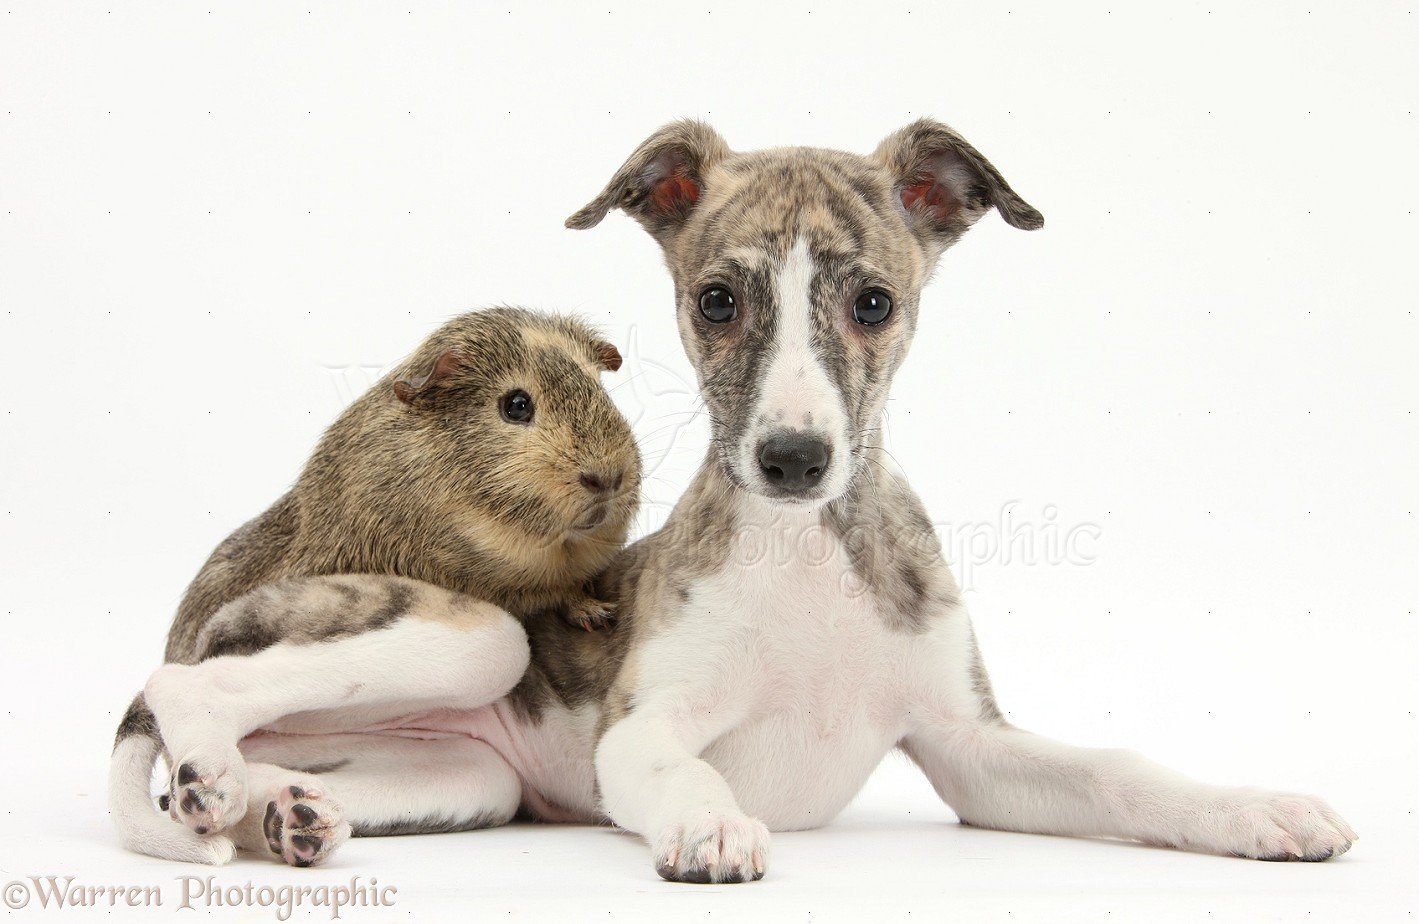 Whippet 29075-Brindle-and-white-Whippet-pup-and-Guinea-pig-white-background